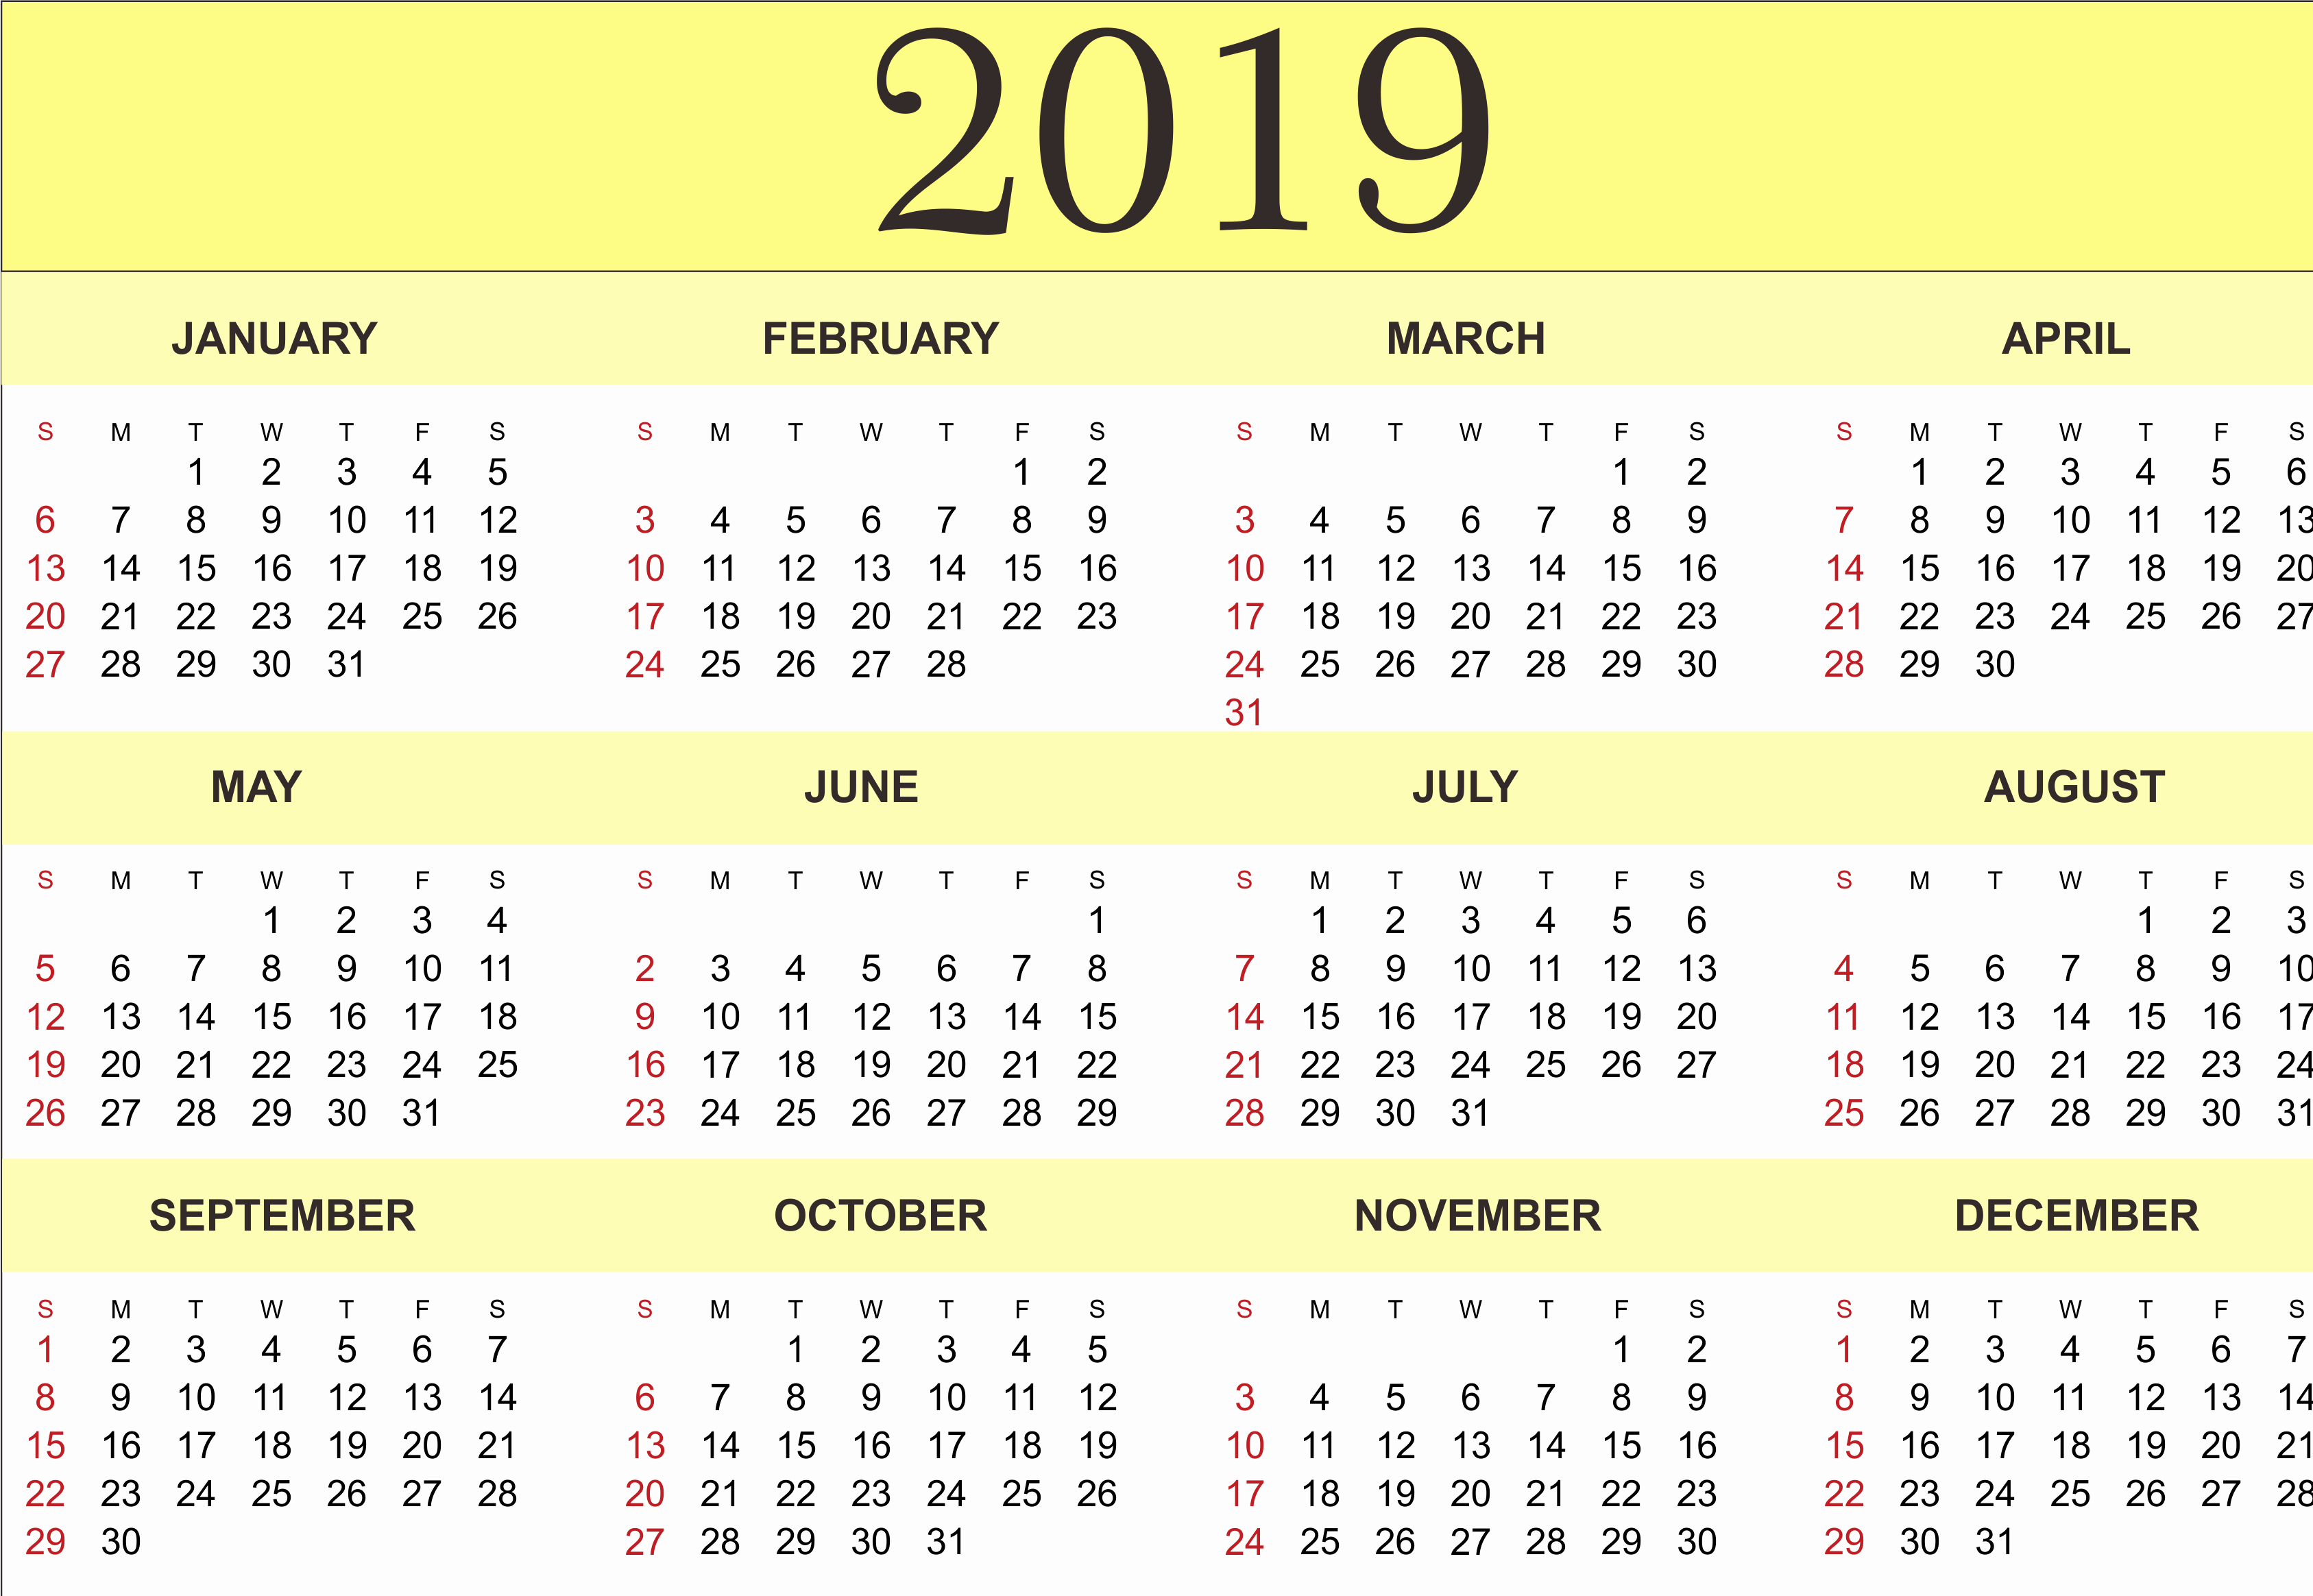 Free Printable Calendar Templates 2019 New Free Yearly Calendar 2019 Printable Blank Templates